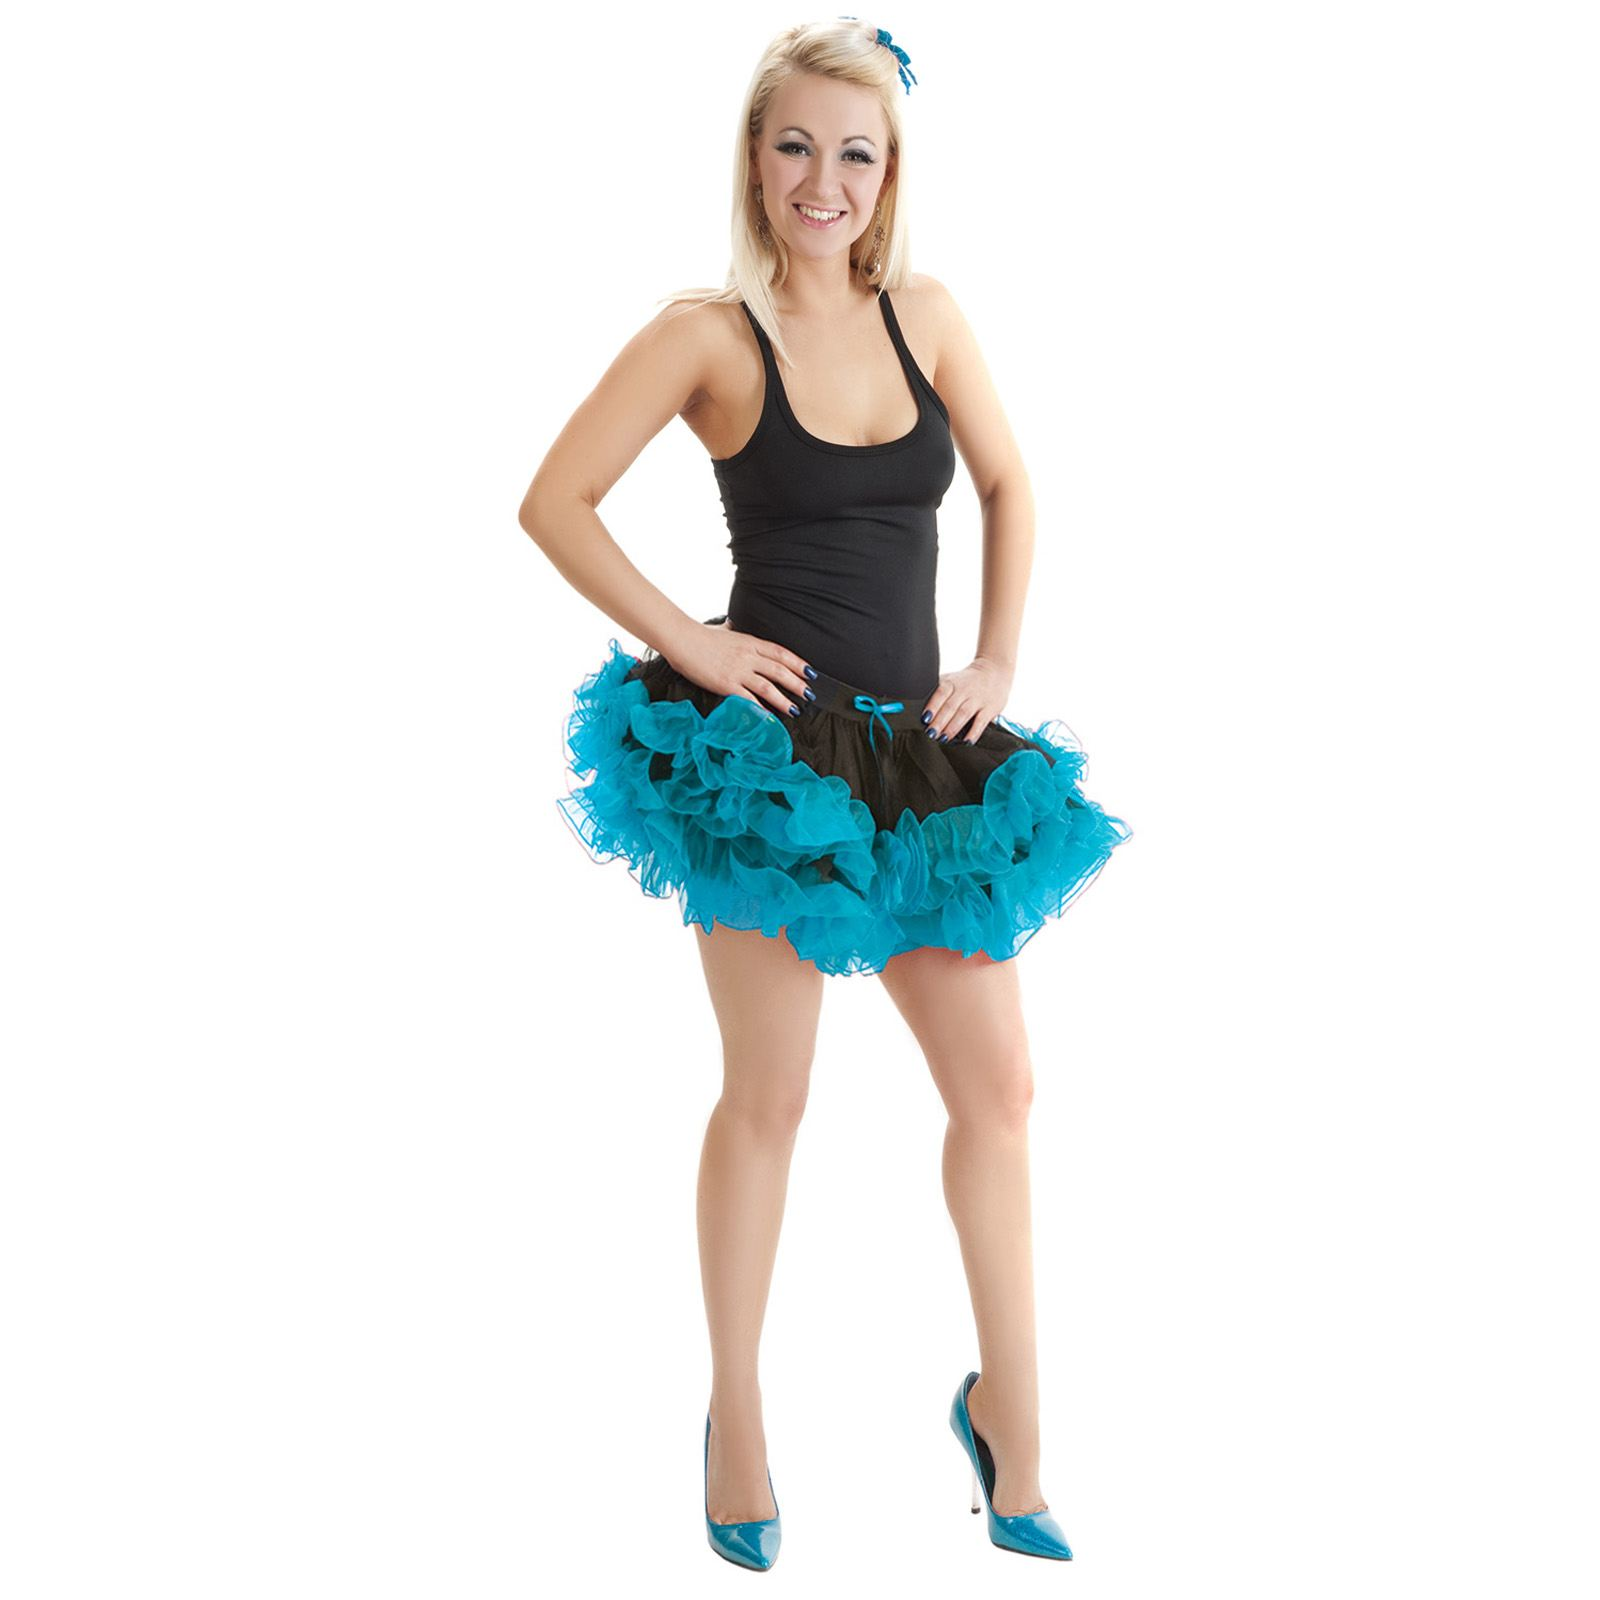 GIRLS WOMENS LADIES 2 LAYER RUFFLE TUTU SKIRT HEN NIGHT